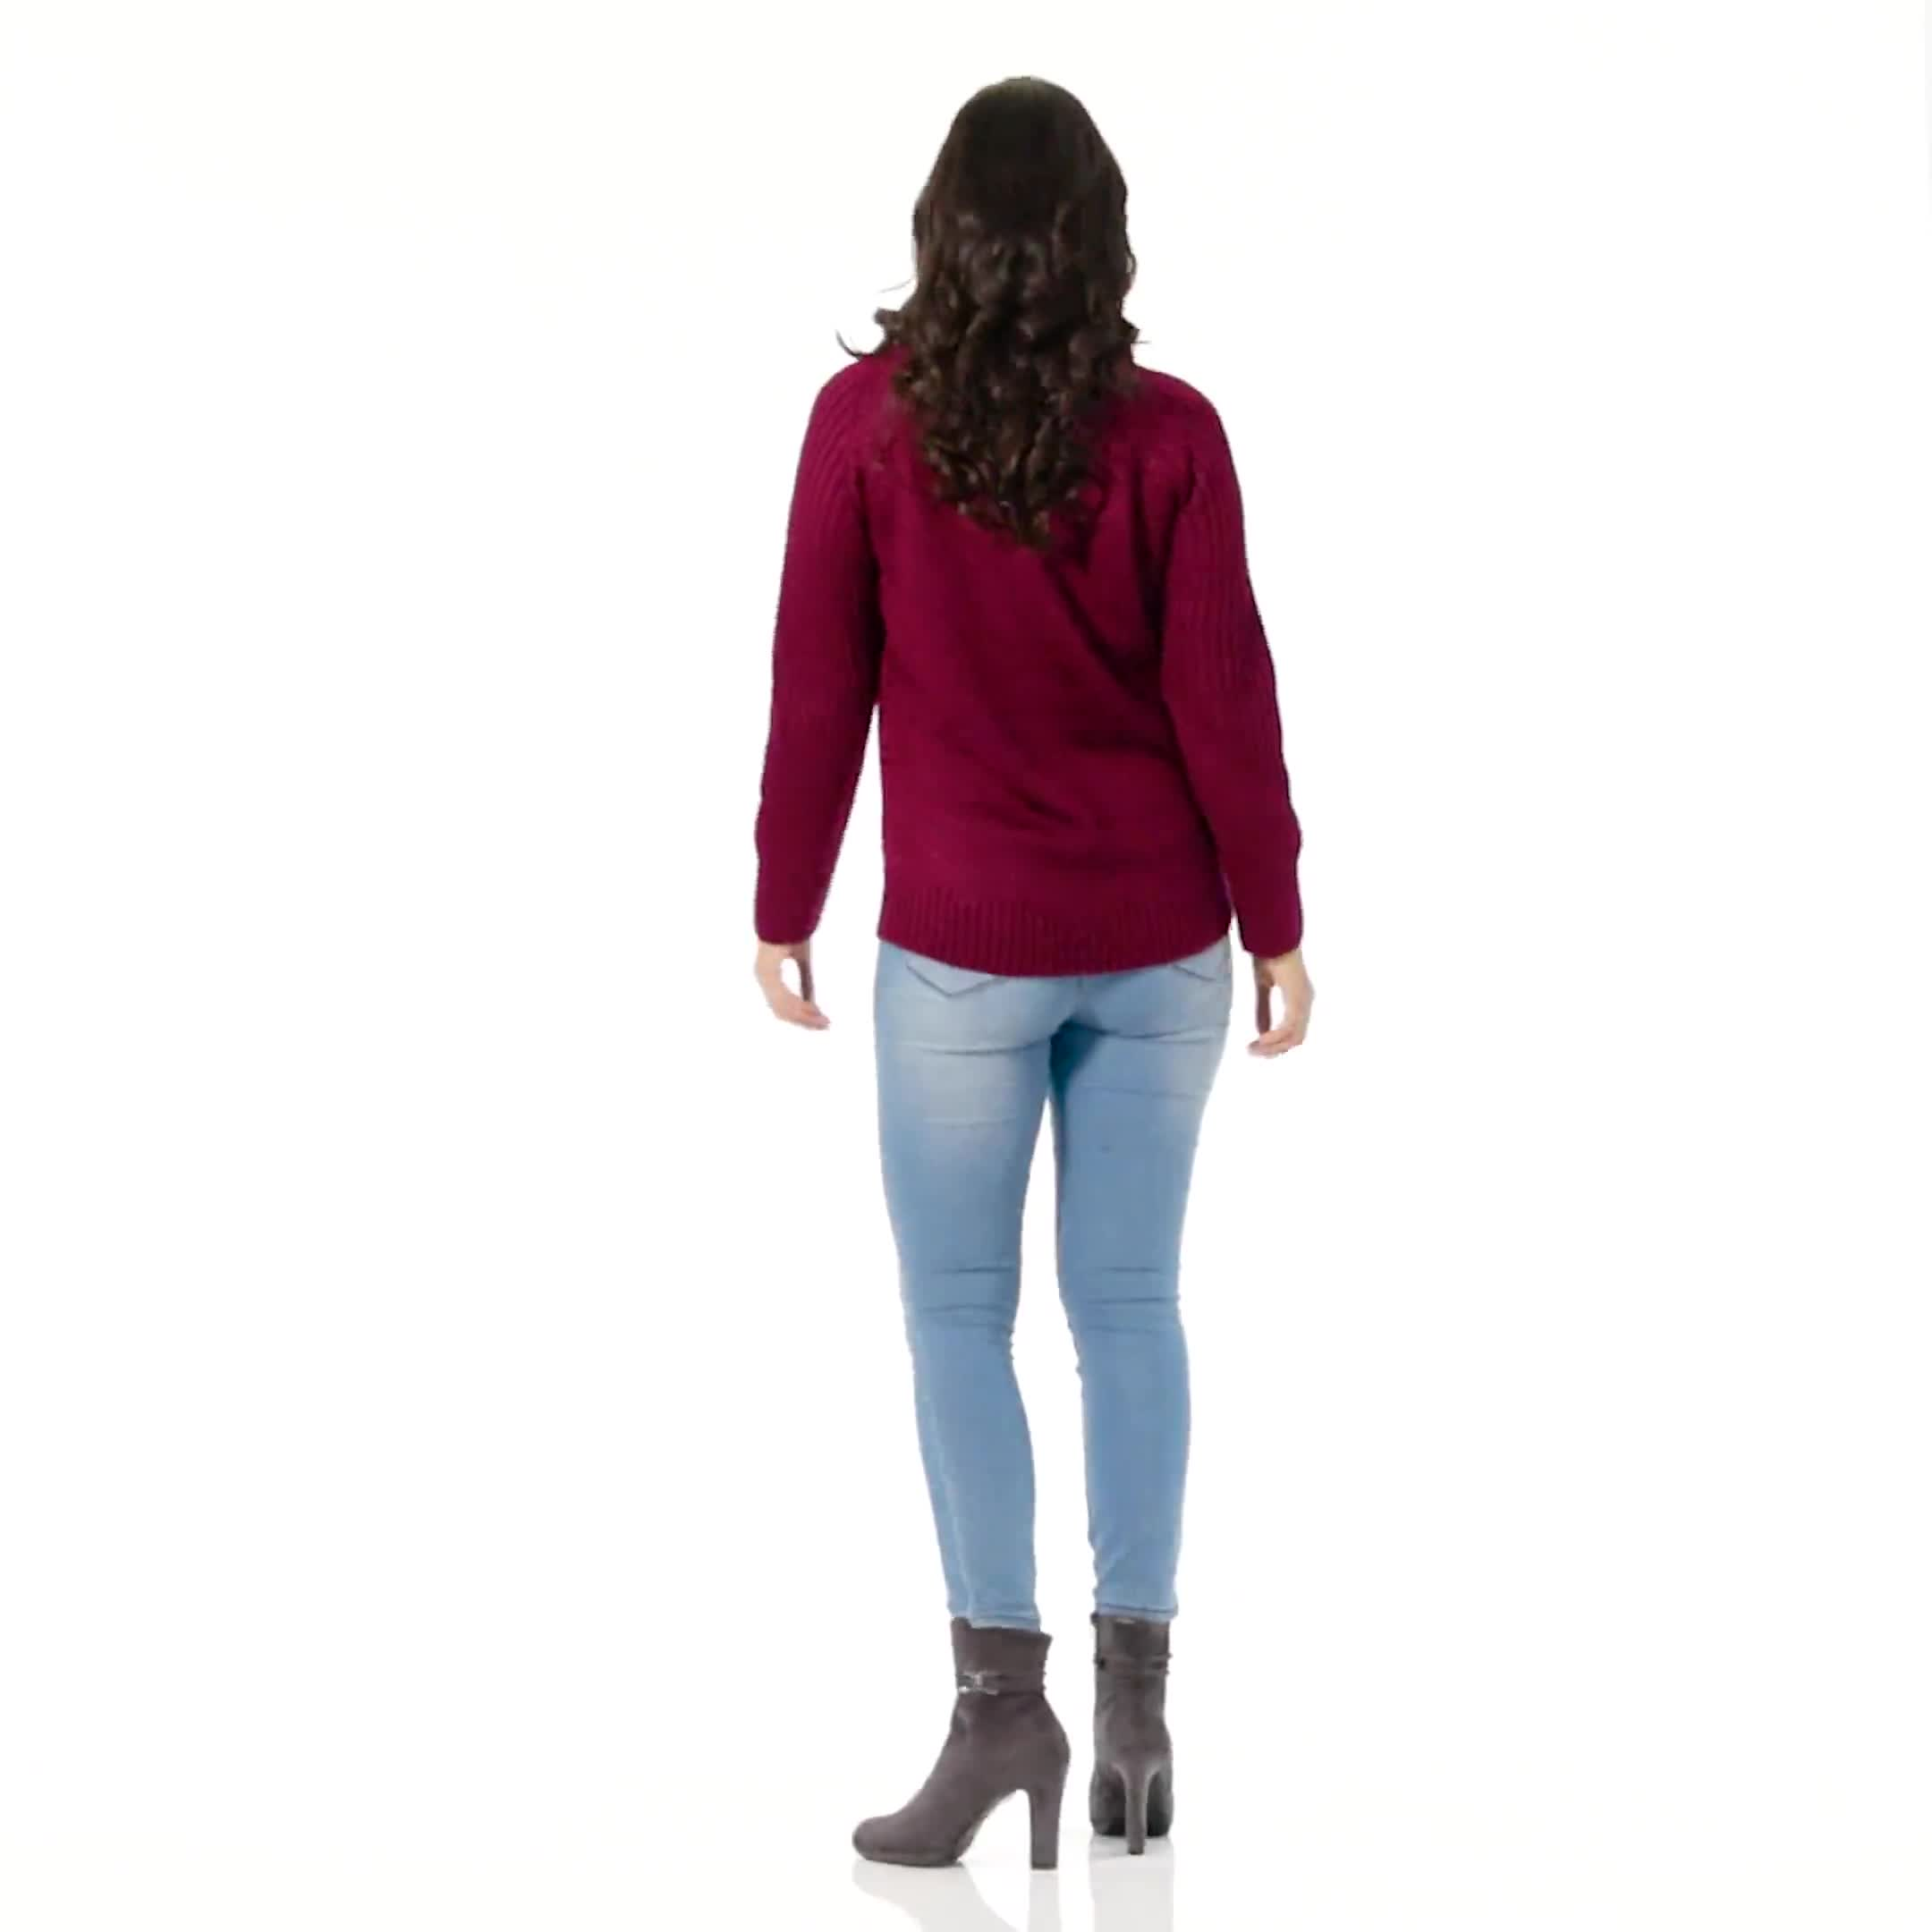 Westport Cable Detail Curved Hem Sweater - Video